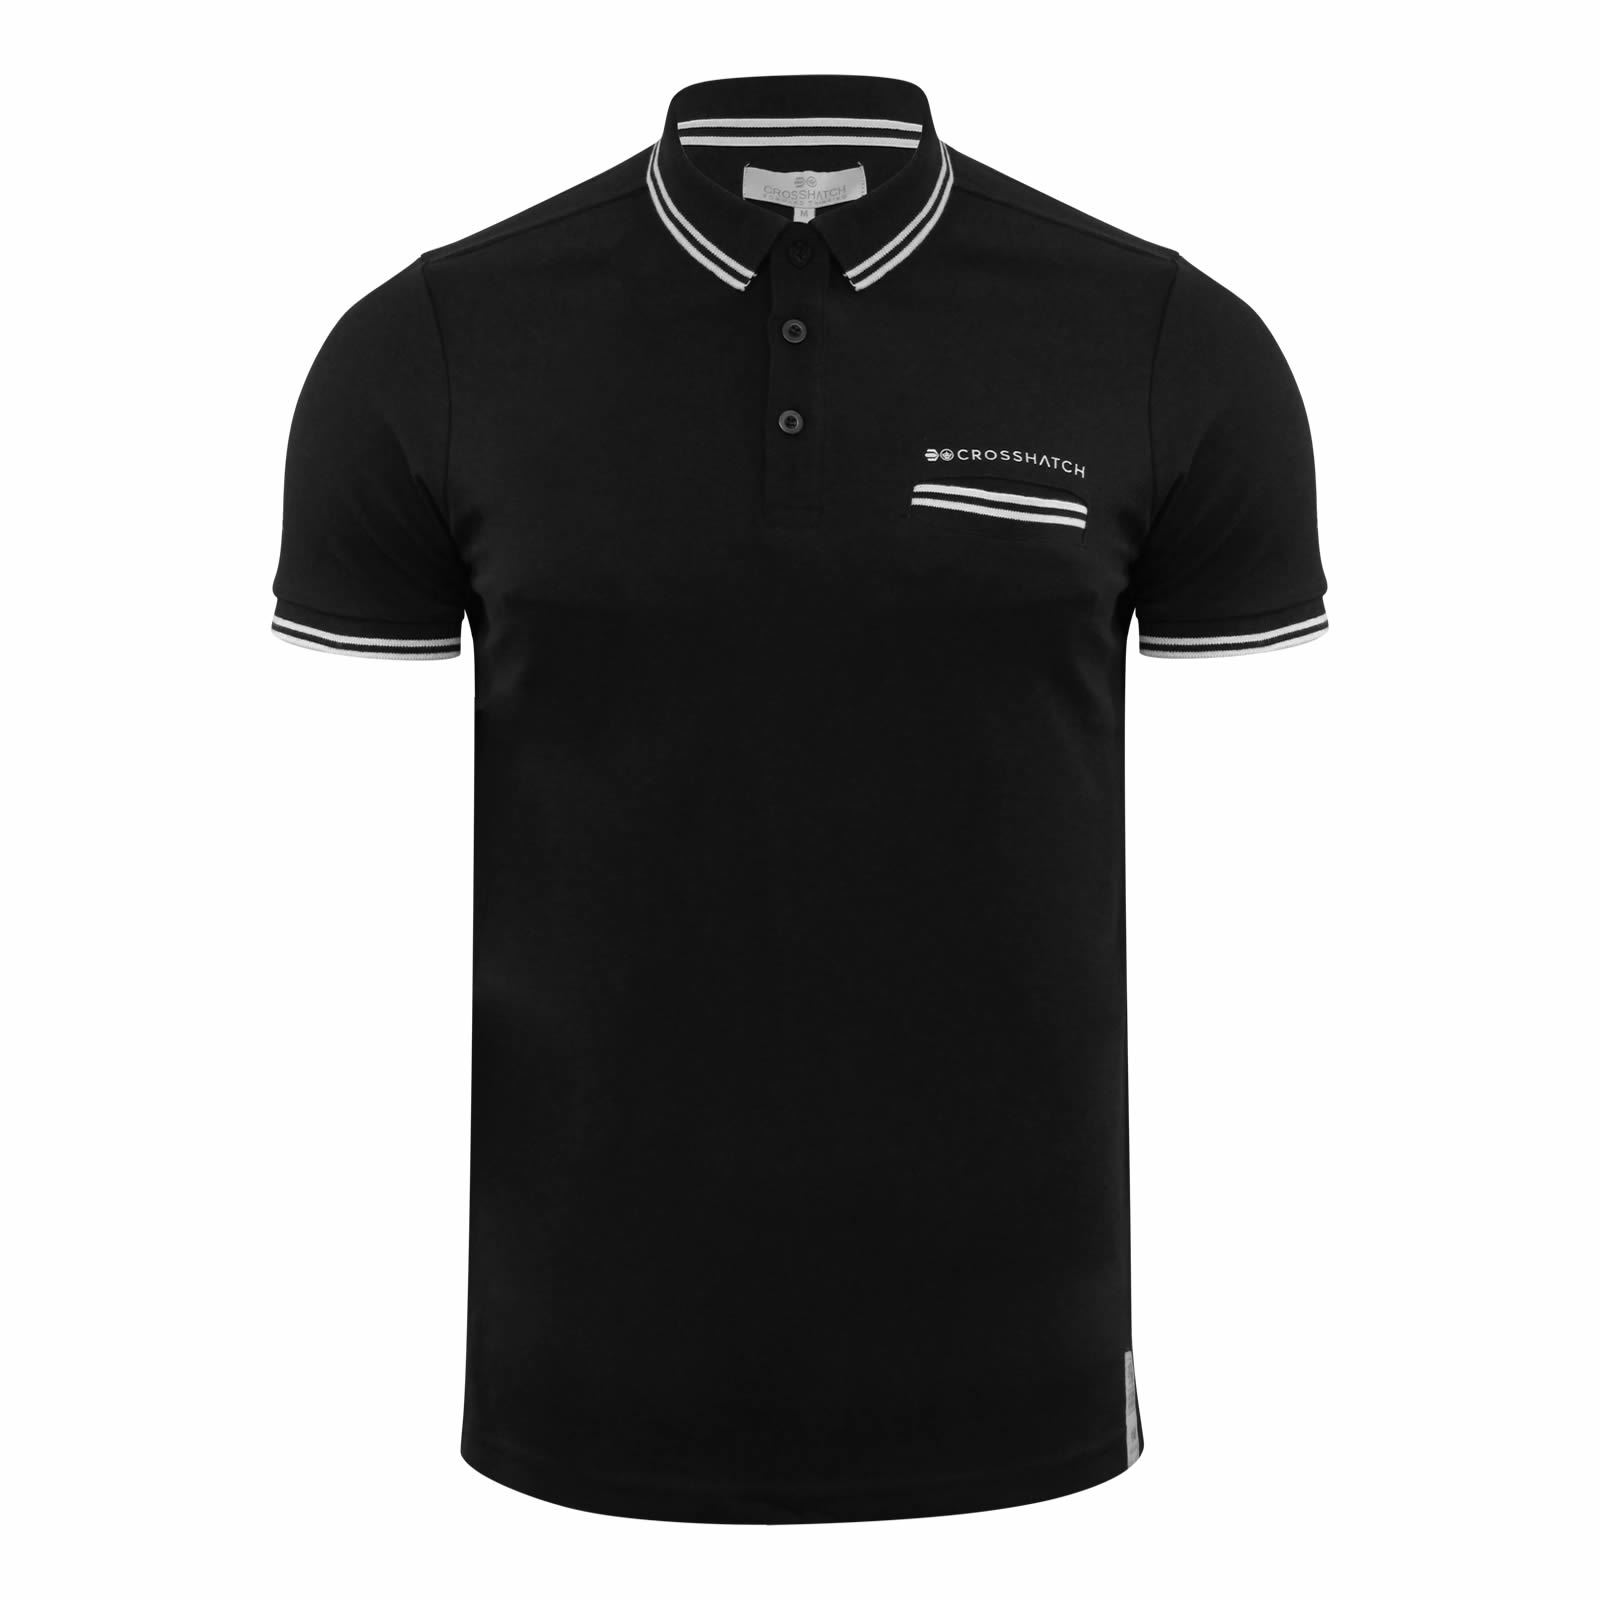 Crosshatch-Mens-Polo-T-Shirt-Pique-Polo-Cotton-Collared-Short-Sleeve-T-Shirt thumbnail 59